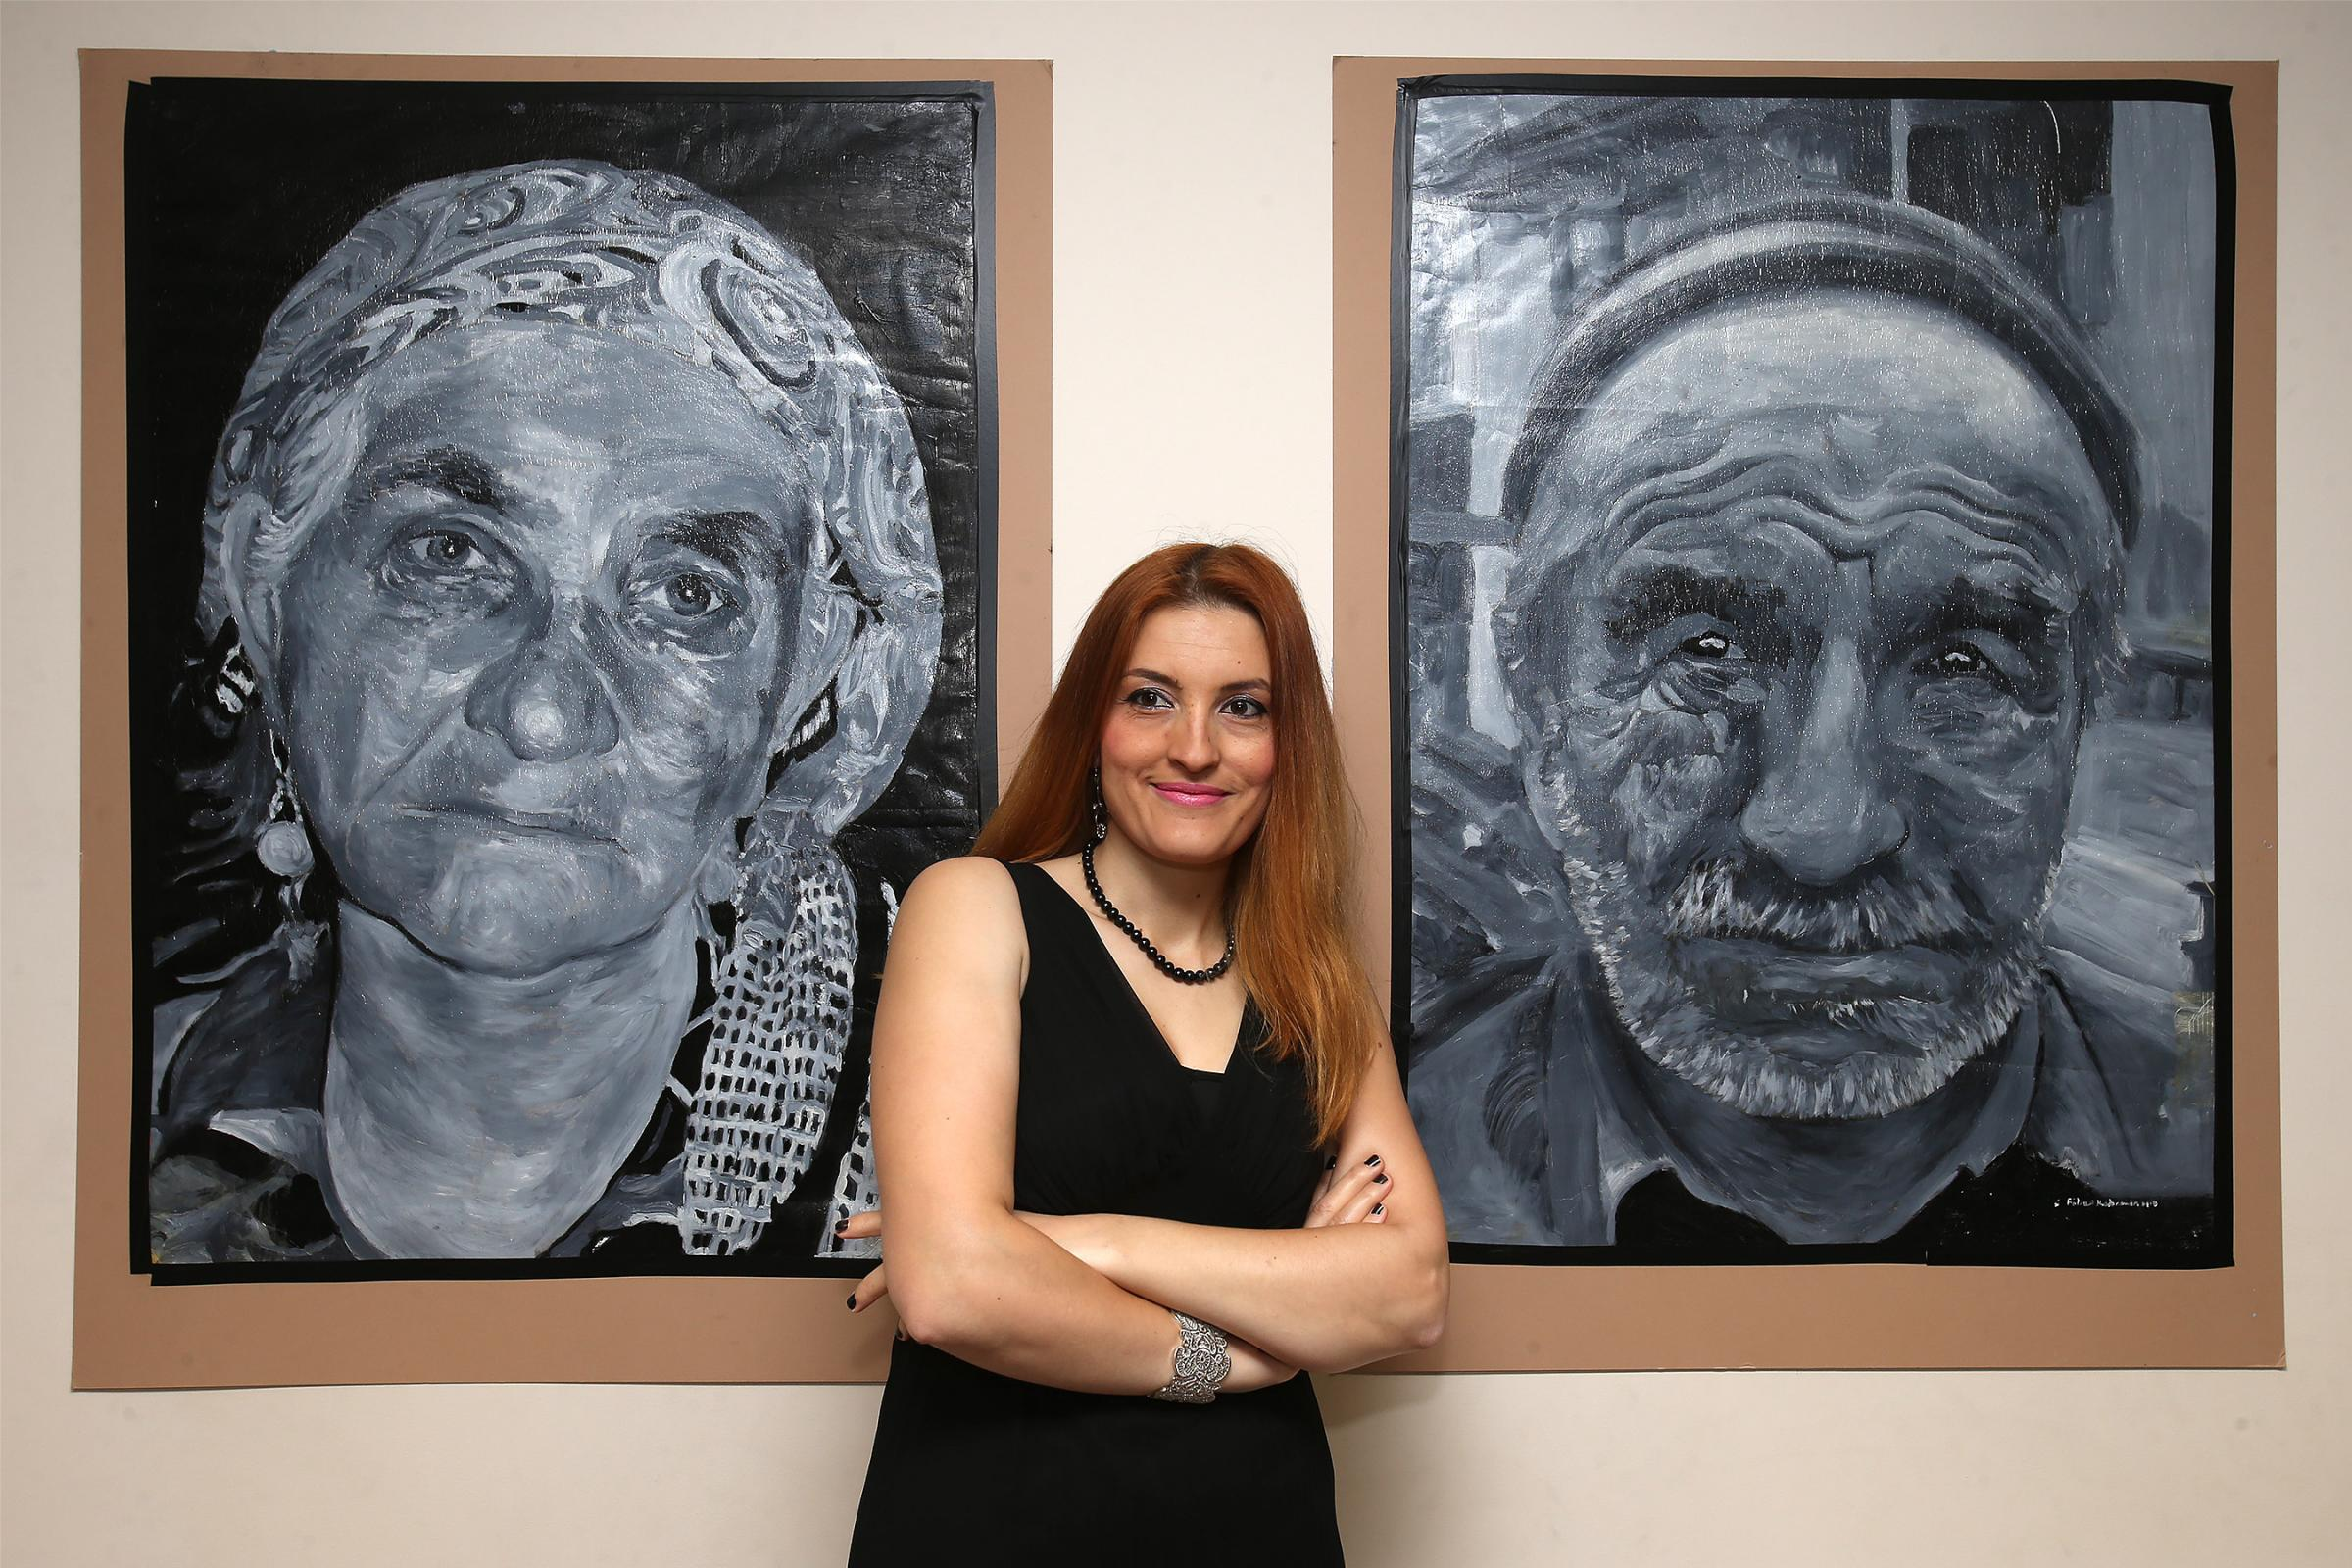 Exhibition highlights Turkish mining disaster